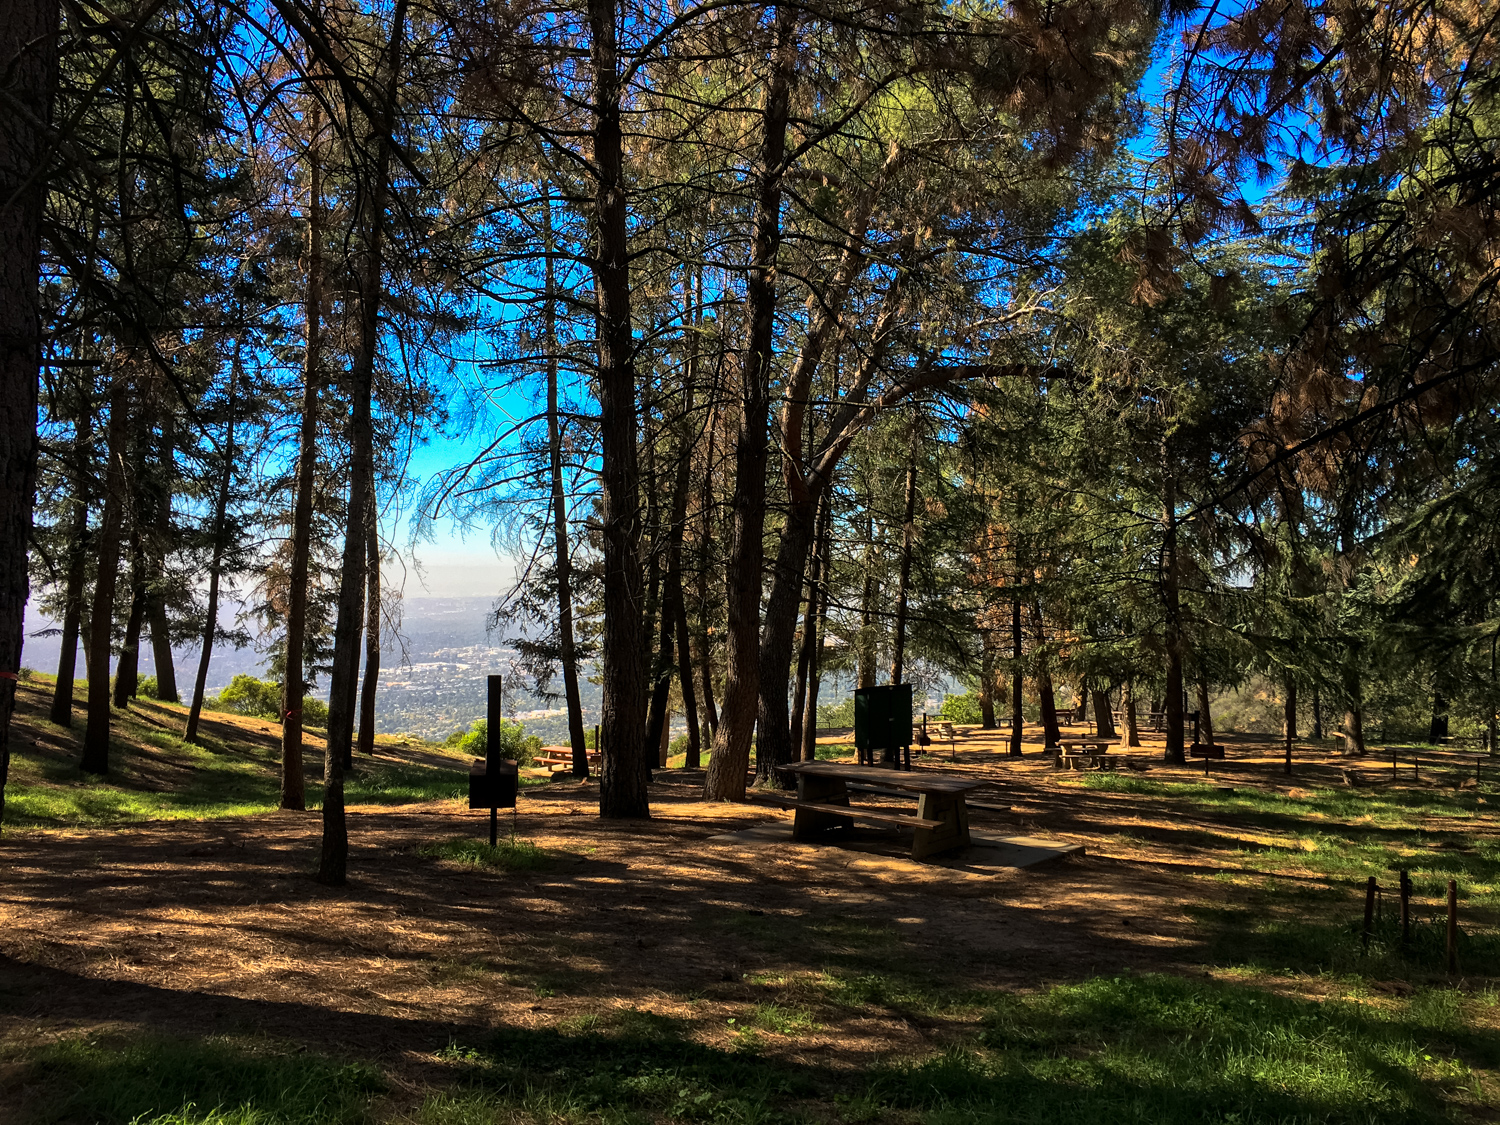 PEAK: Henninger Flats - DIFFICULTY: 3/5SCENERY: Rolling hills, greenery, and hopefully the Downtown LA skyline!FUN FACT: From 1891 to 1936, horse and carriage riders (and later, early automobiles) could climb up to the top of Mount Wilson from Altadena.